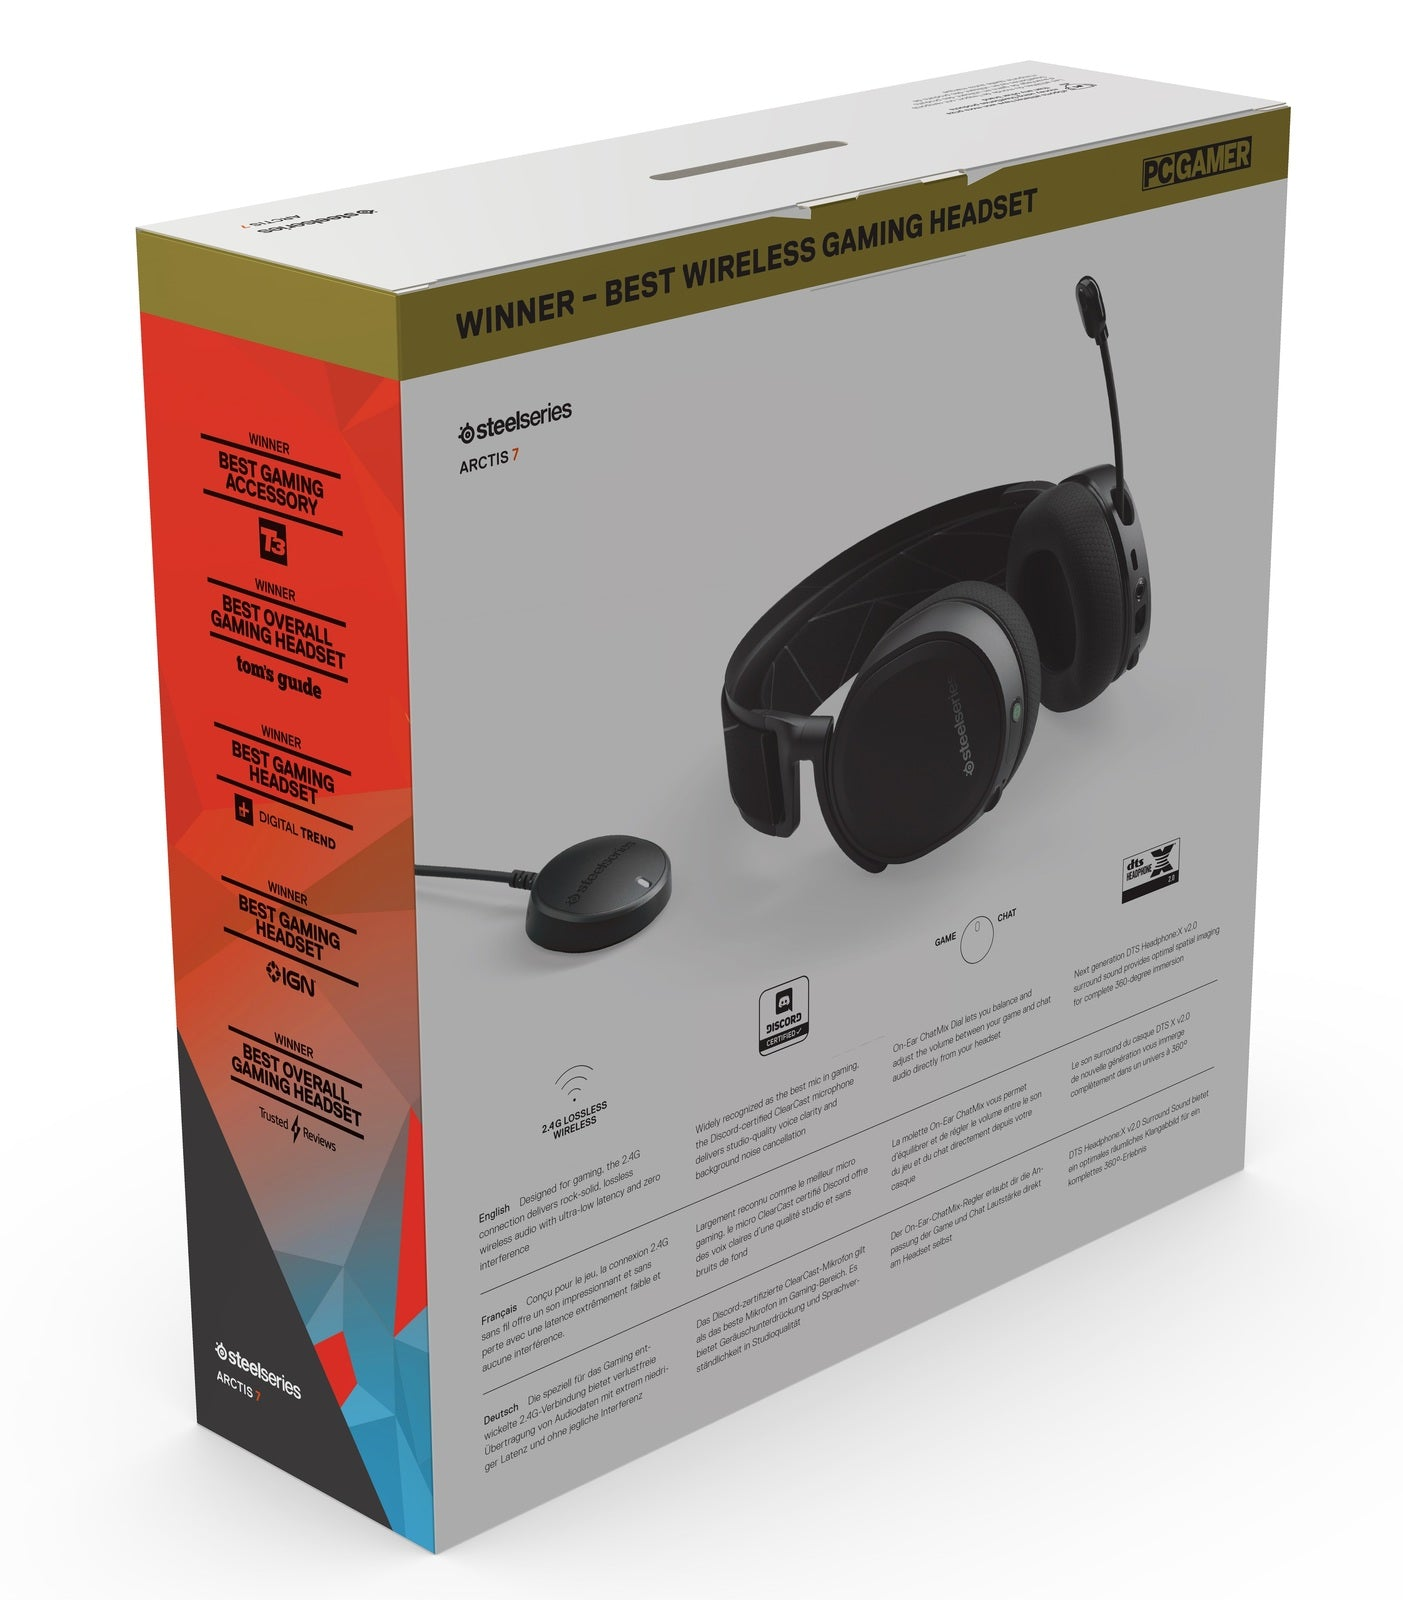 SteelSeries Arctis 7 Wireless Gaming Headset (Black) - PC Games